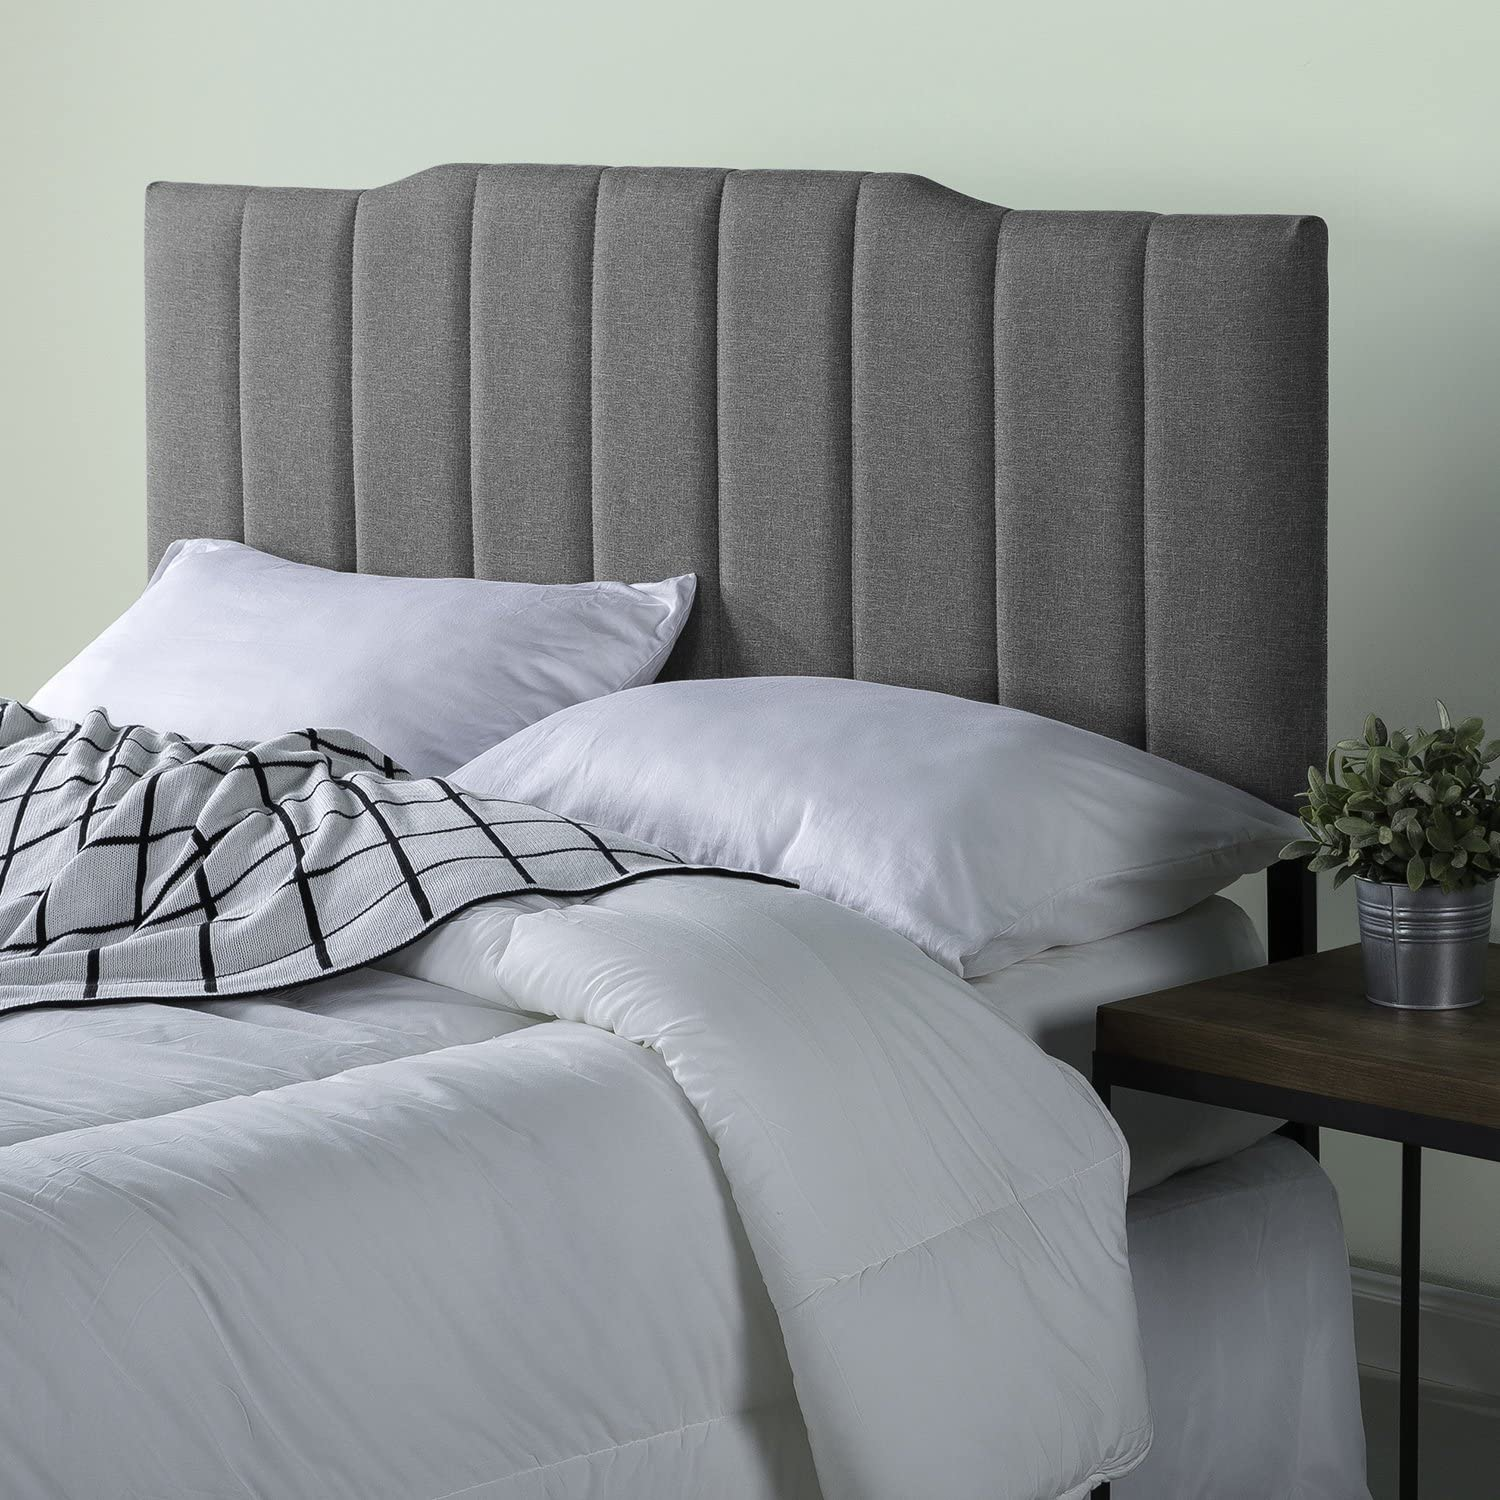 Zinus Satish Upholstered Channel Stitched Headboard in Grey, Queen